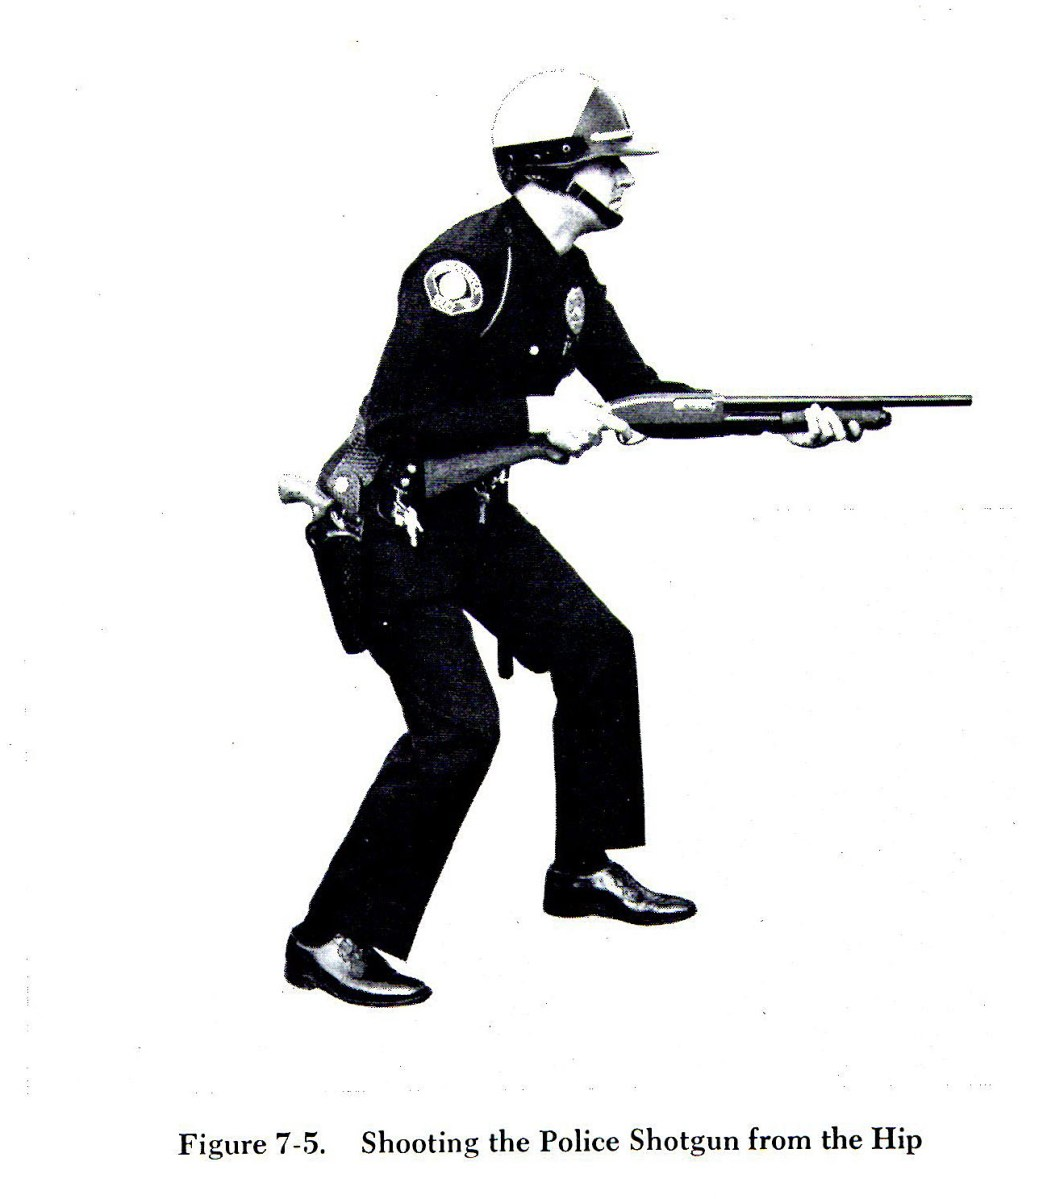 Shooting the police shotgun from the hip